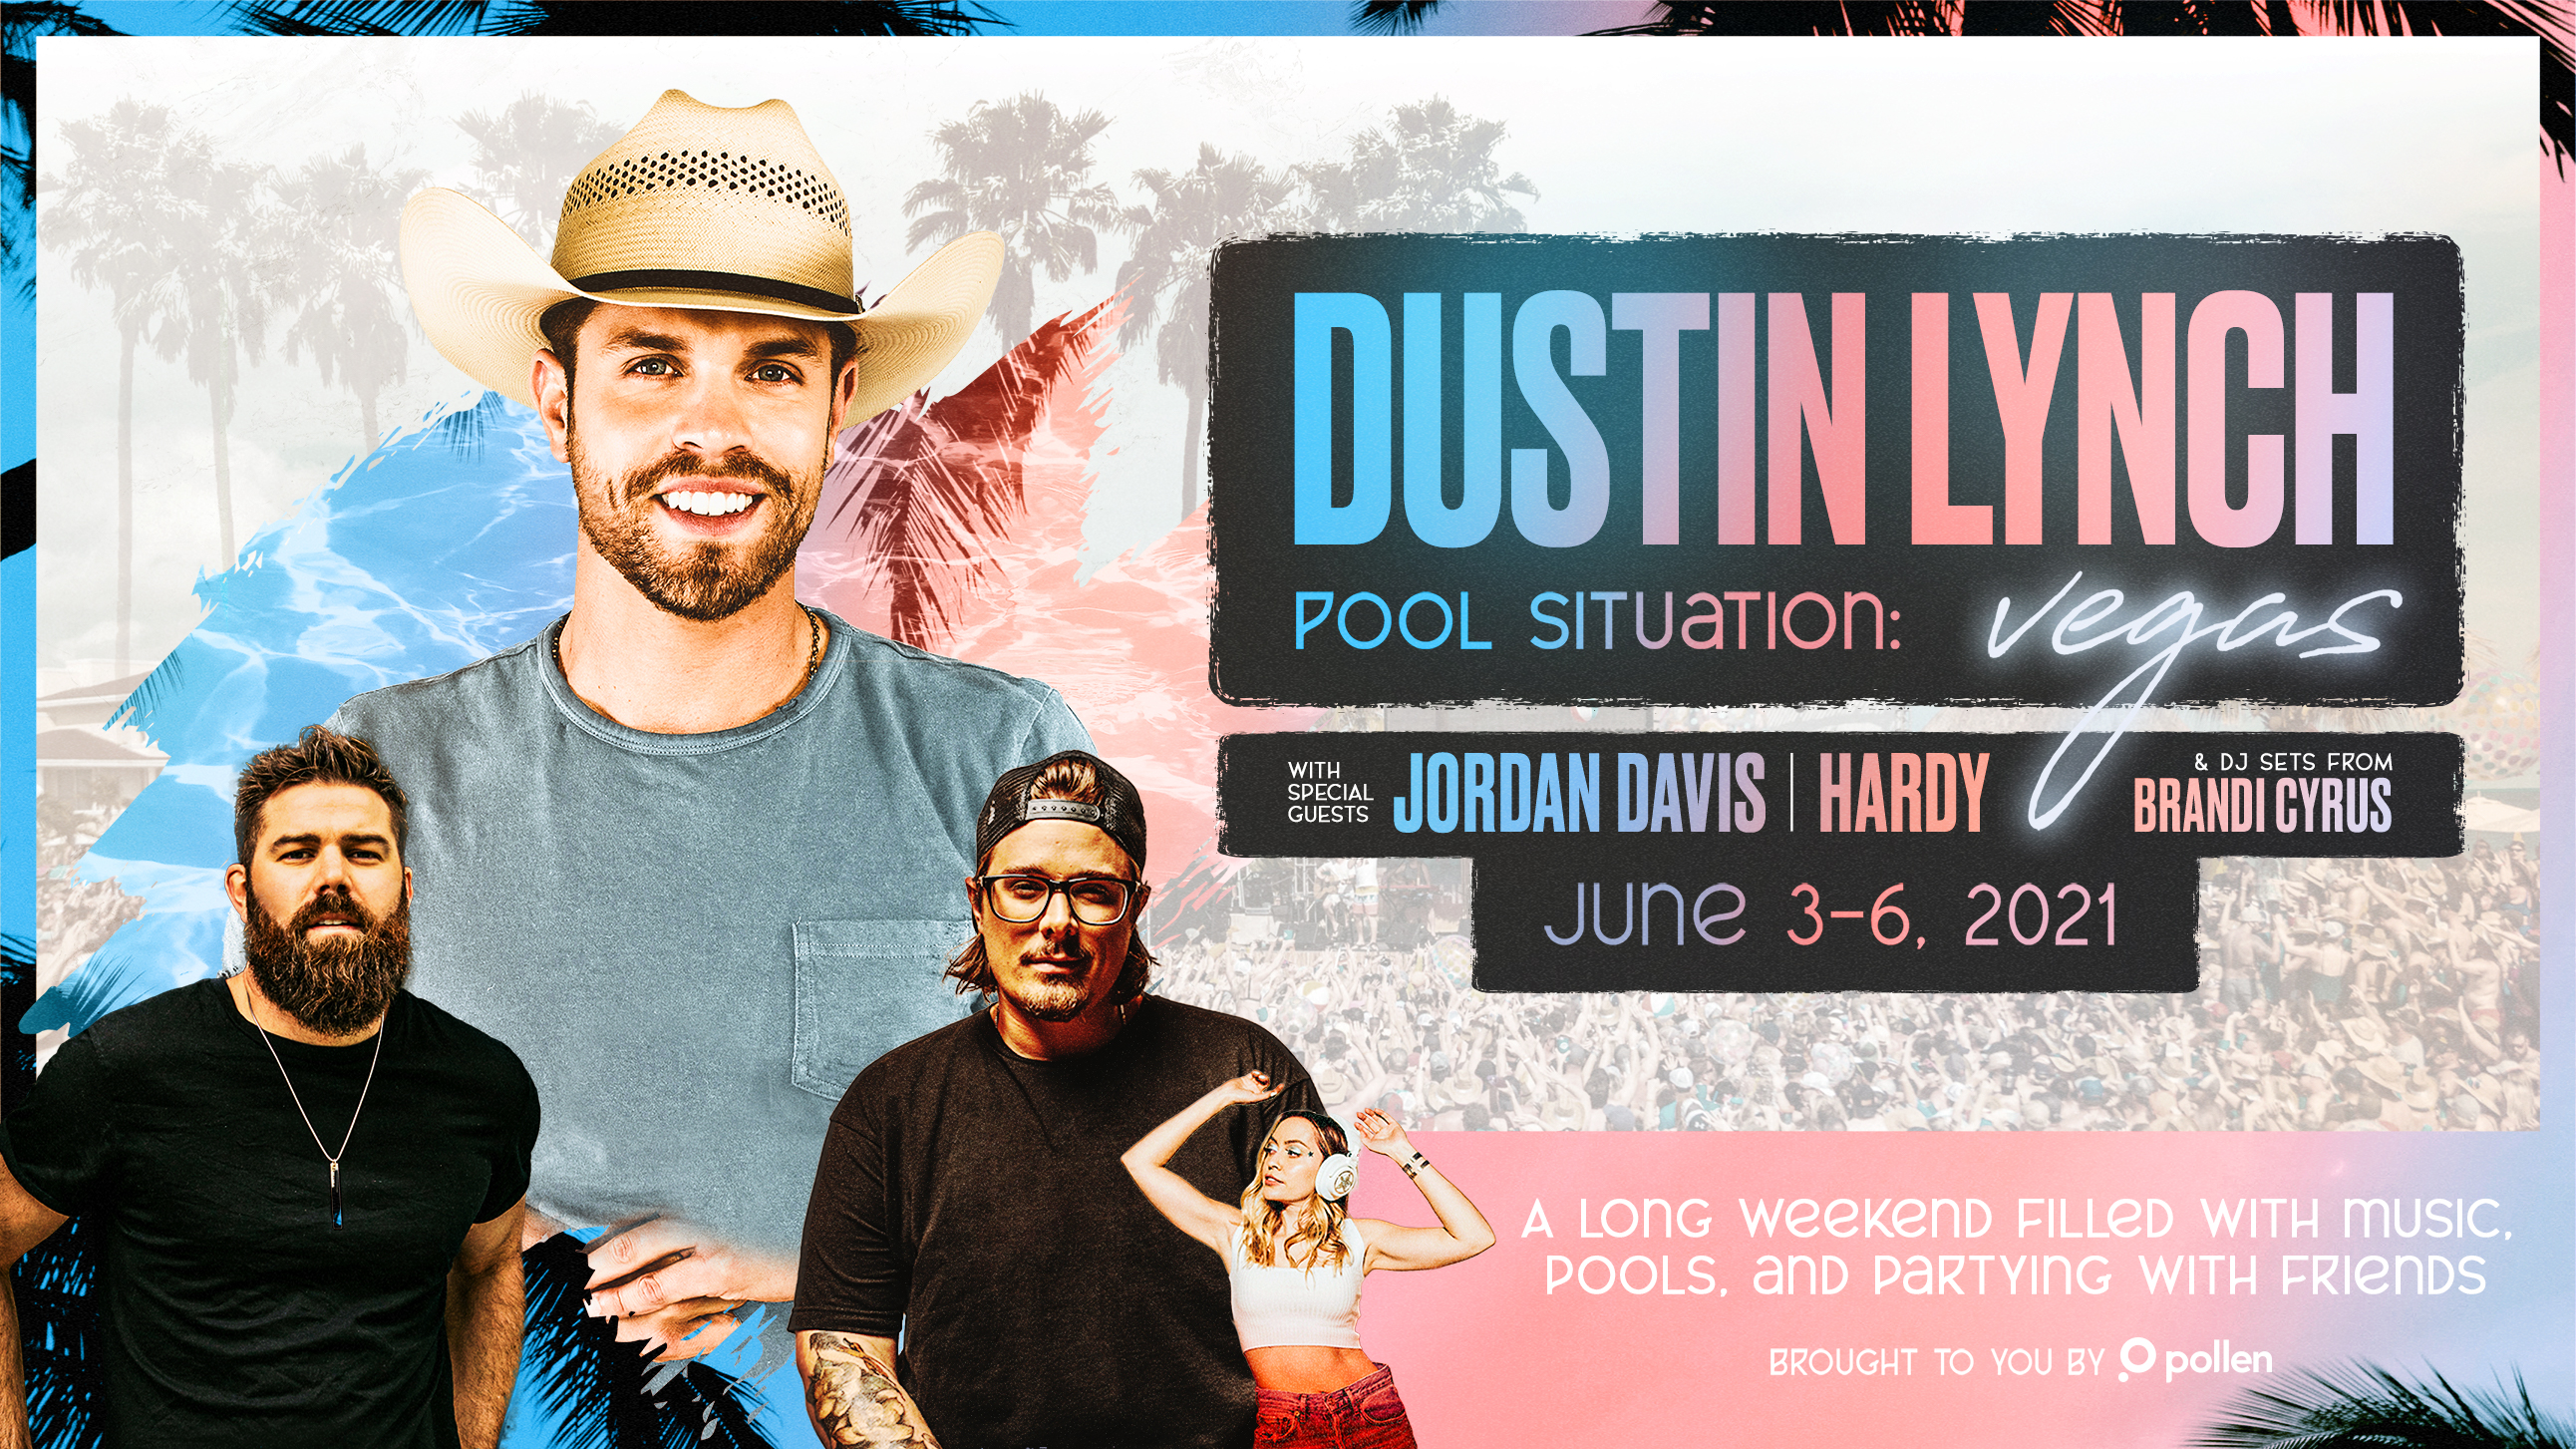 TICKET PACKAGES ON SALE NOW: DUSTIN LYNCH IS THROWING A MASSIVE 3-DAY VEGAS POOL PARTY IN SUMMER 2021